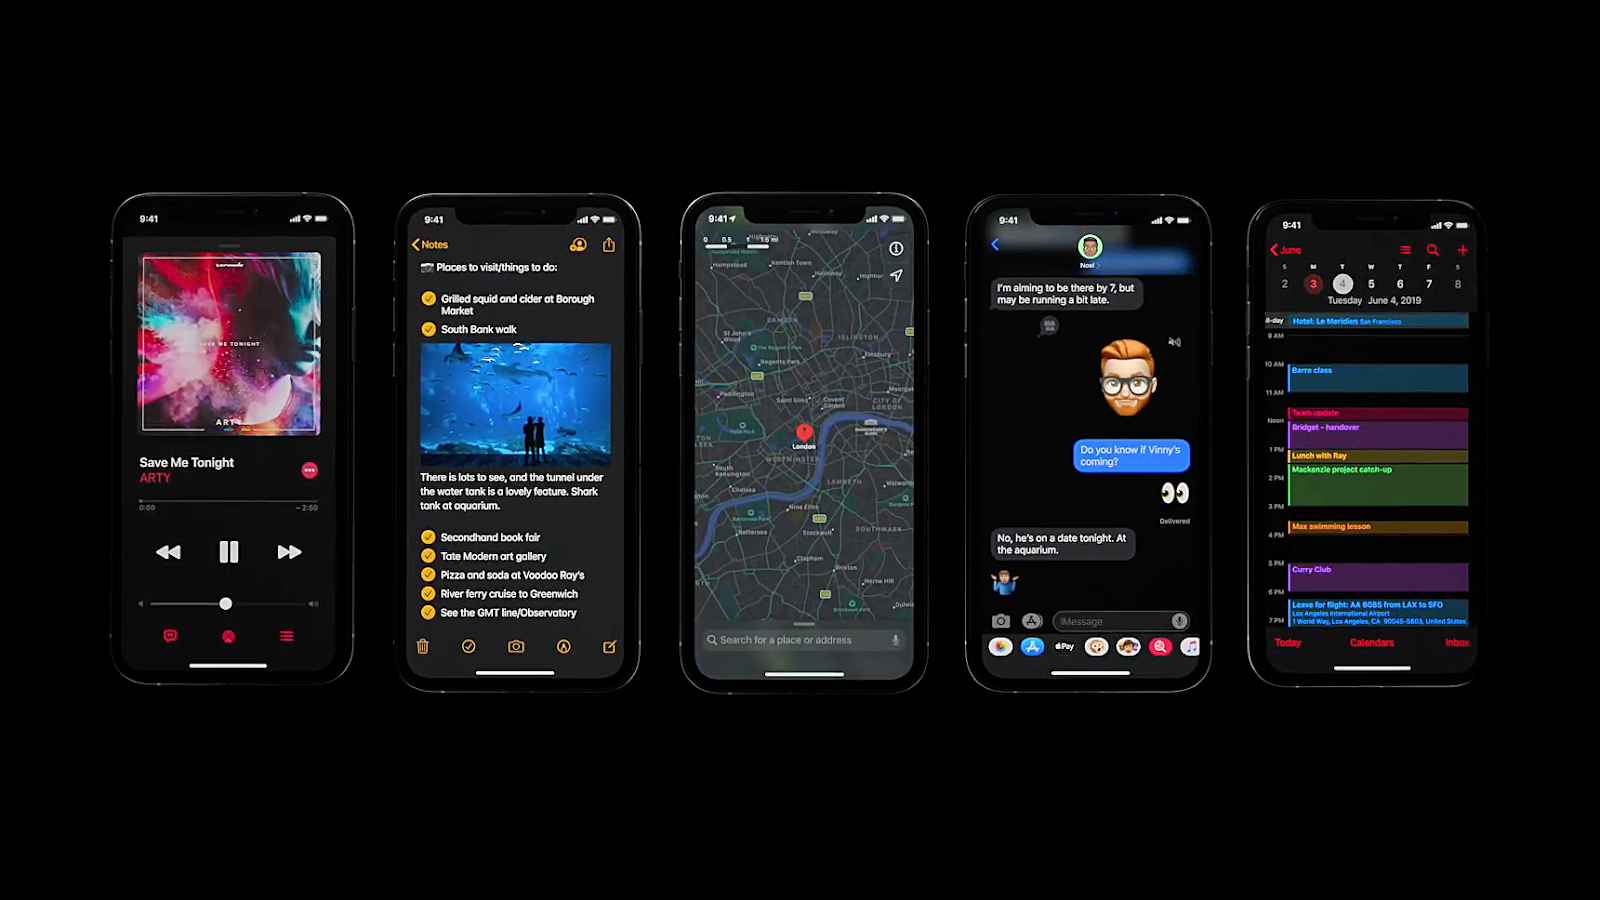 iOS 13 features and compatible devices